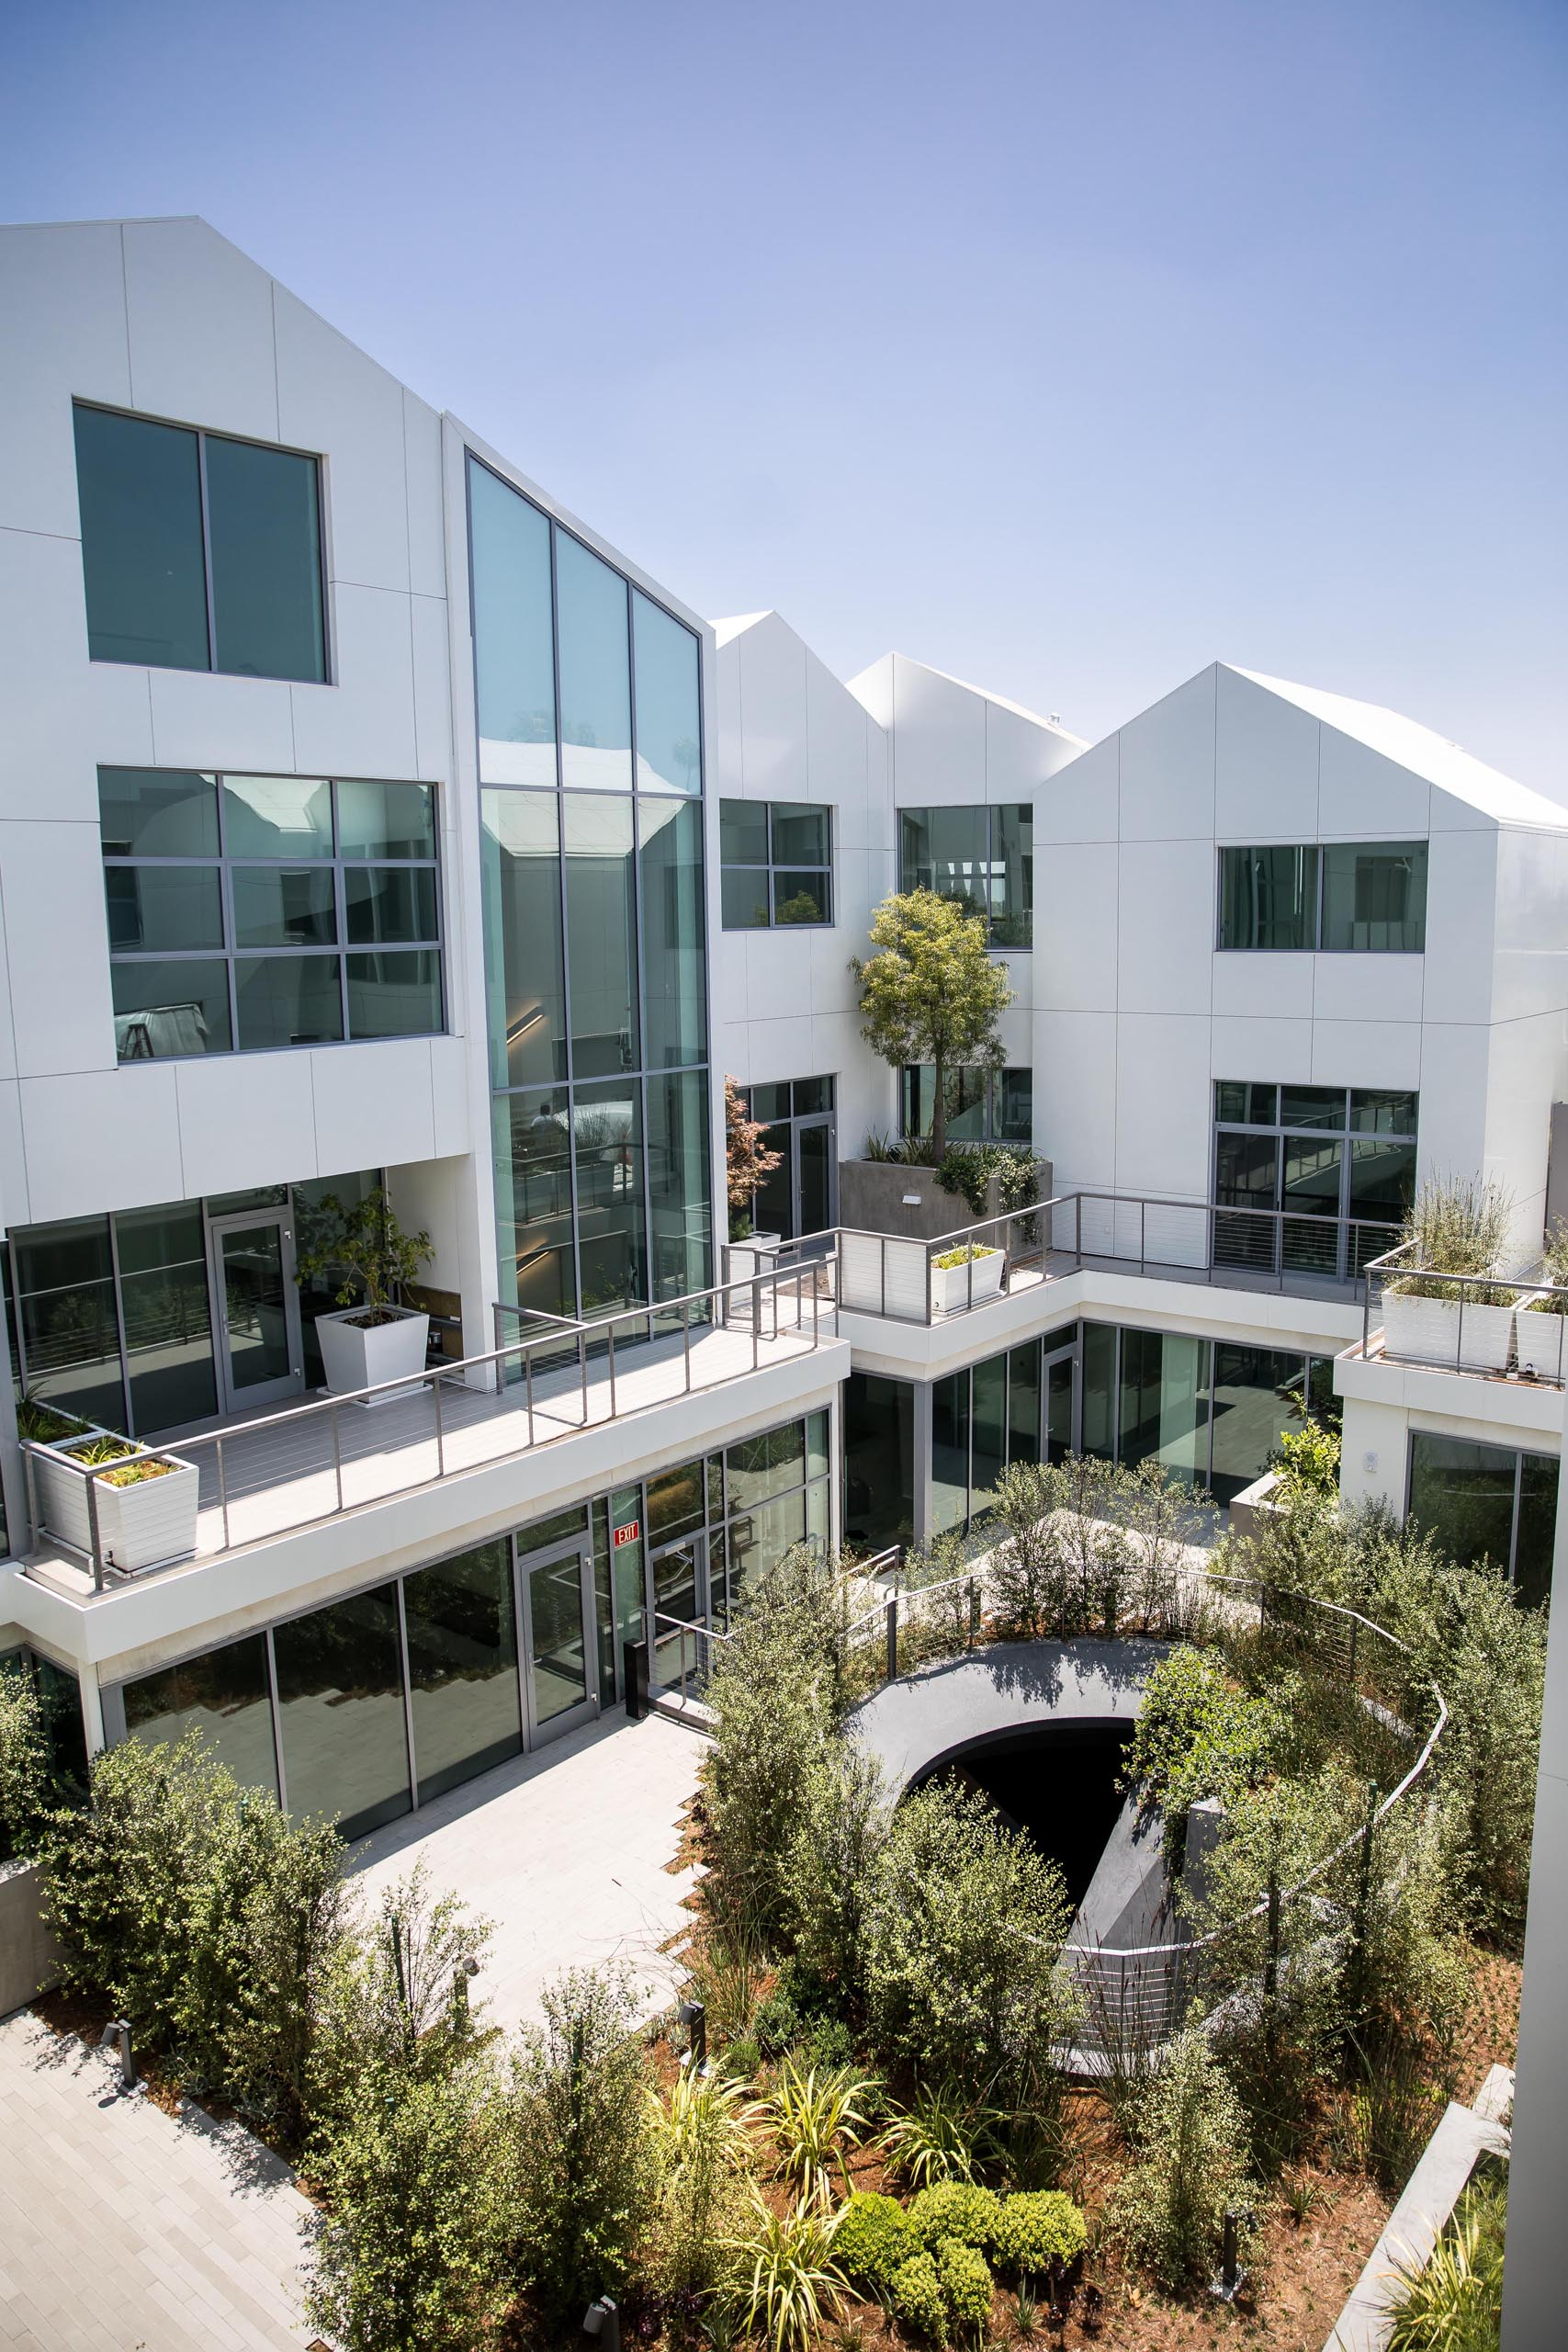 A modern residential building with terraces and gardens.